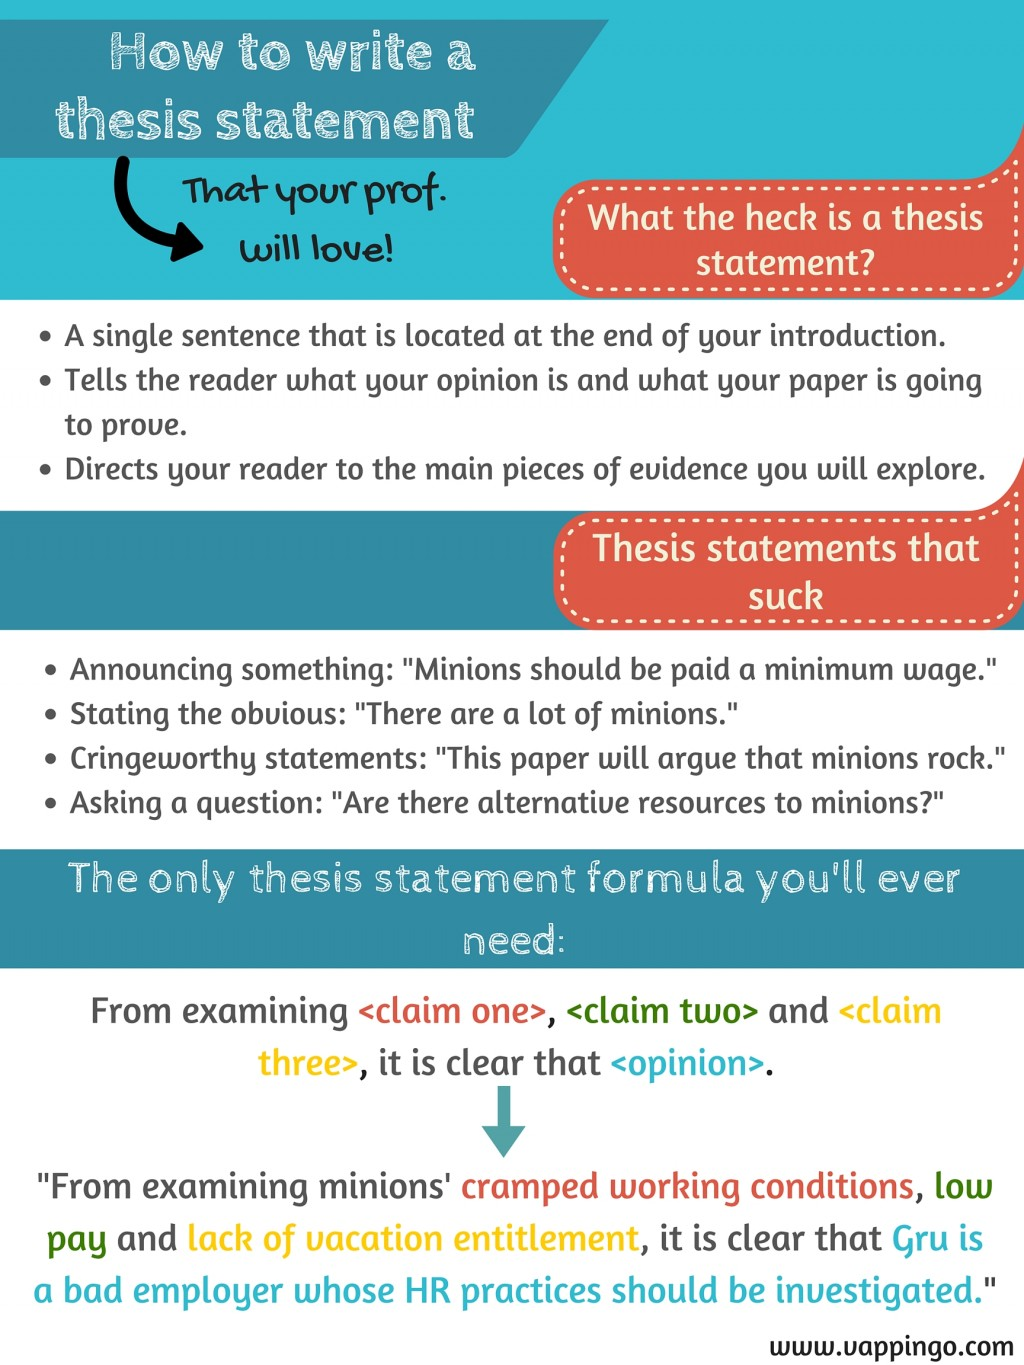 006 How To Write Claim For An Essay Thesis Statement Poster Astounding A And Support Of Value Policy Large